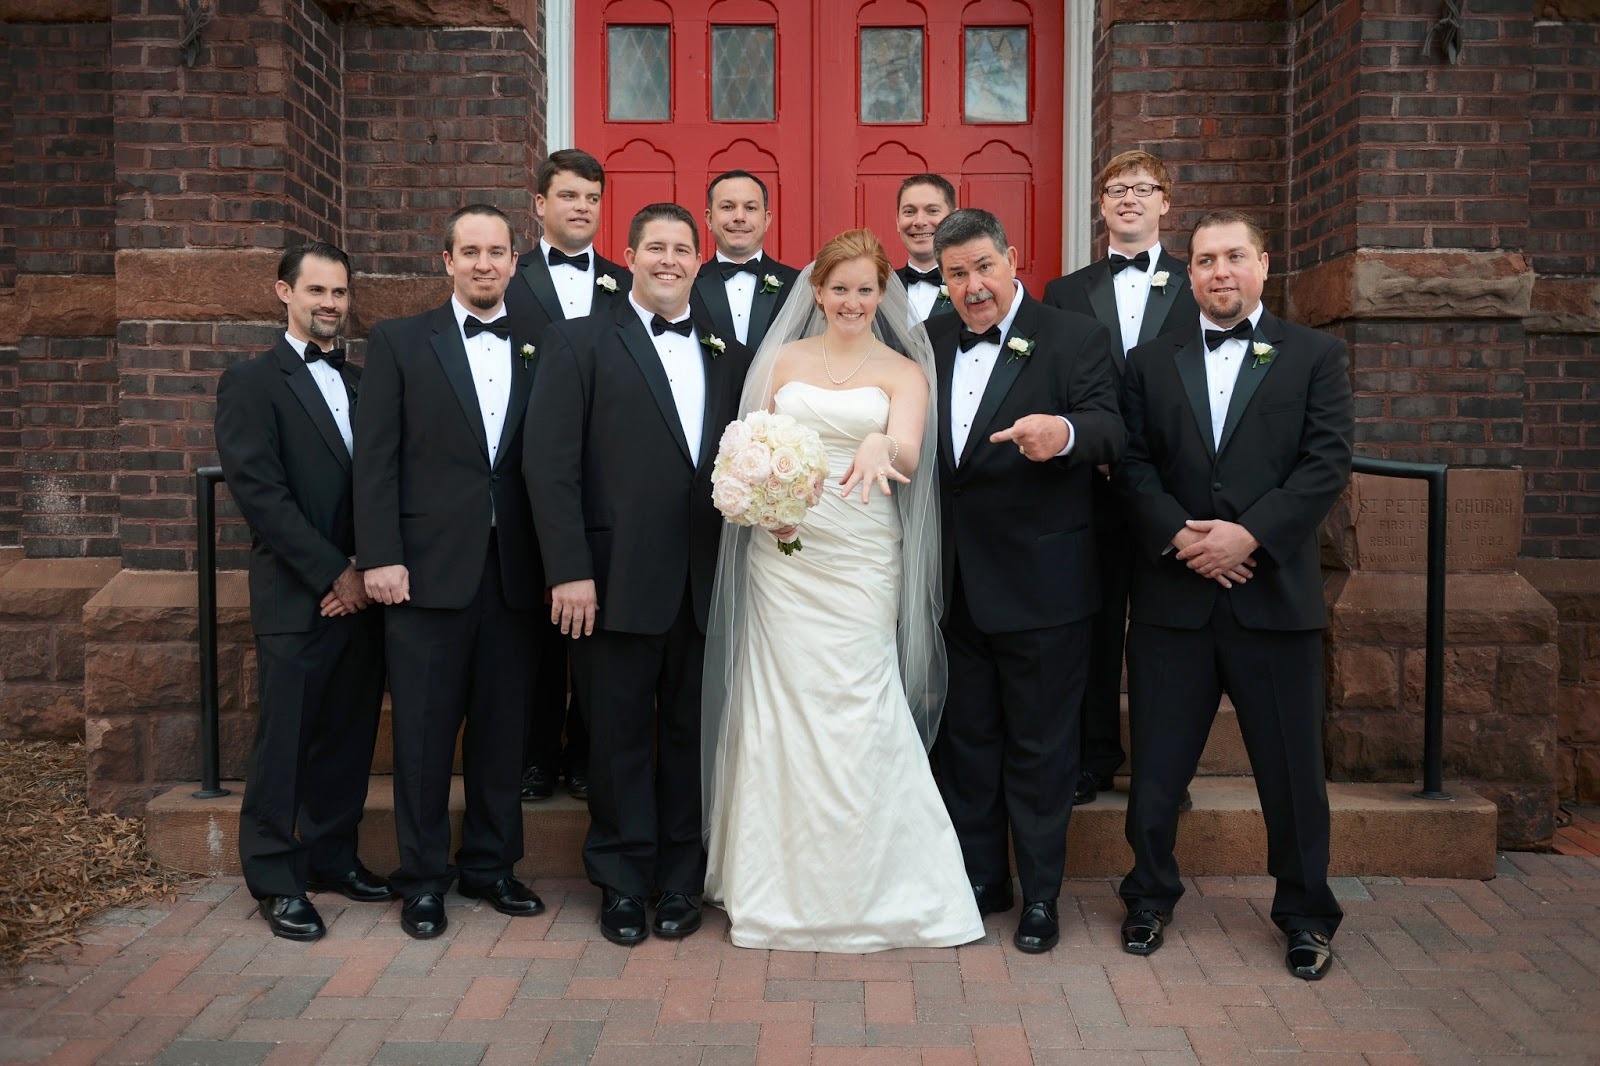 Do I Need Bridesmaids 4 Reasons To Have A Wedding Without: Classic Annie.: Wedding Pictures